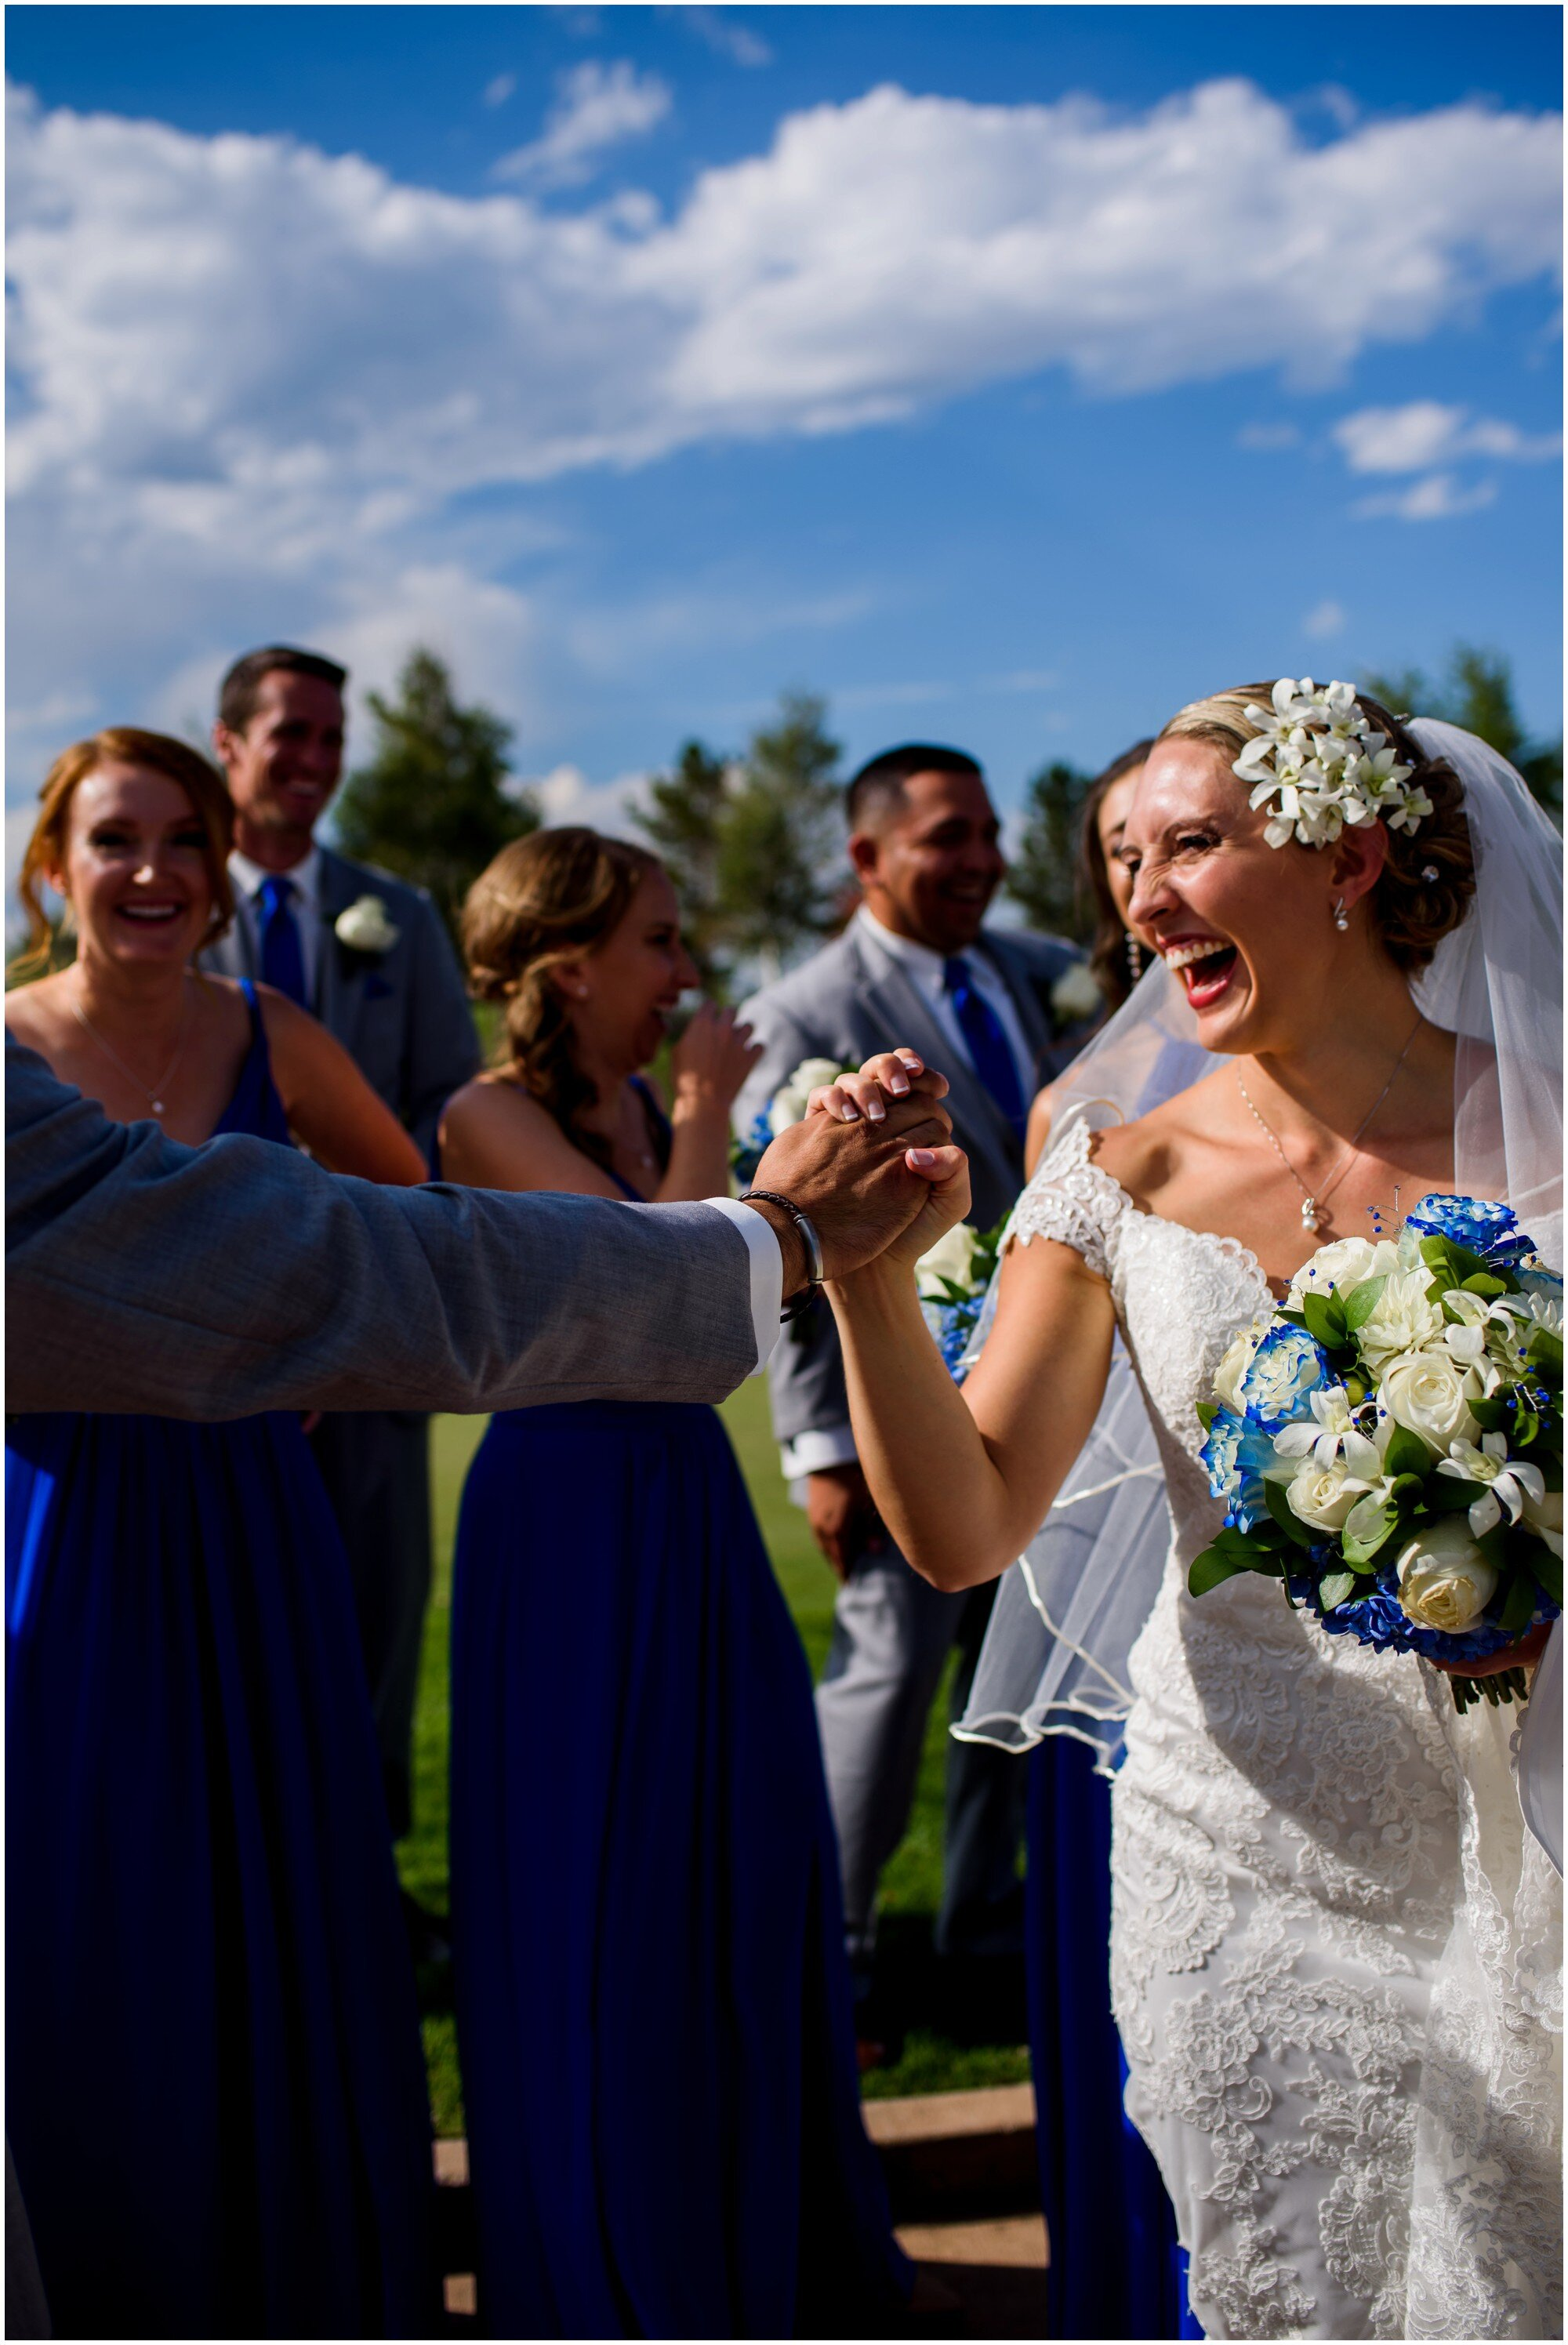 happy bride with blue and white bridal party